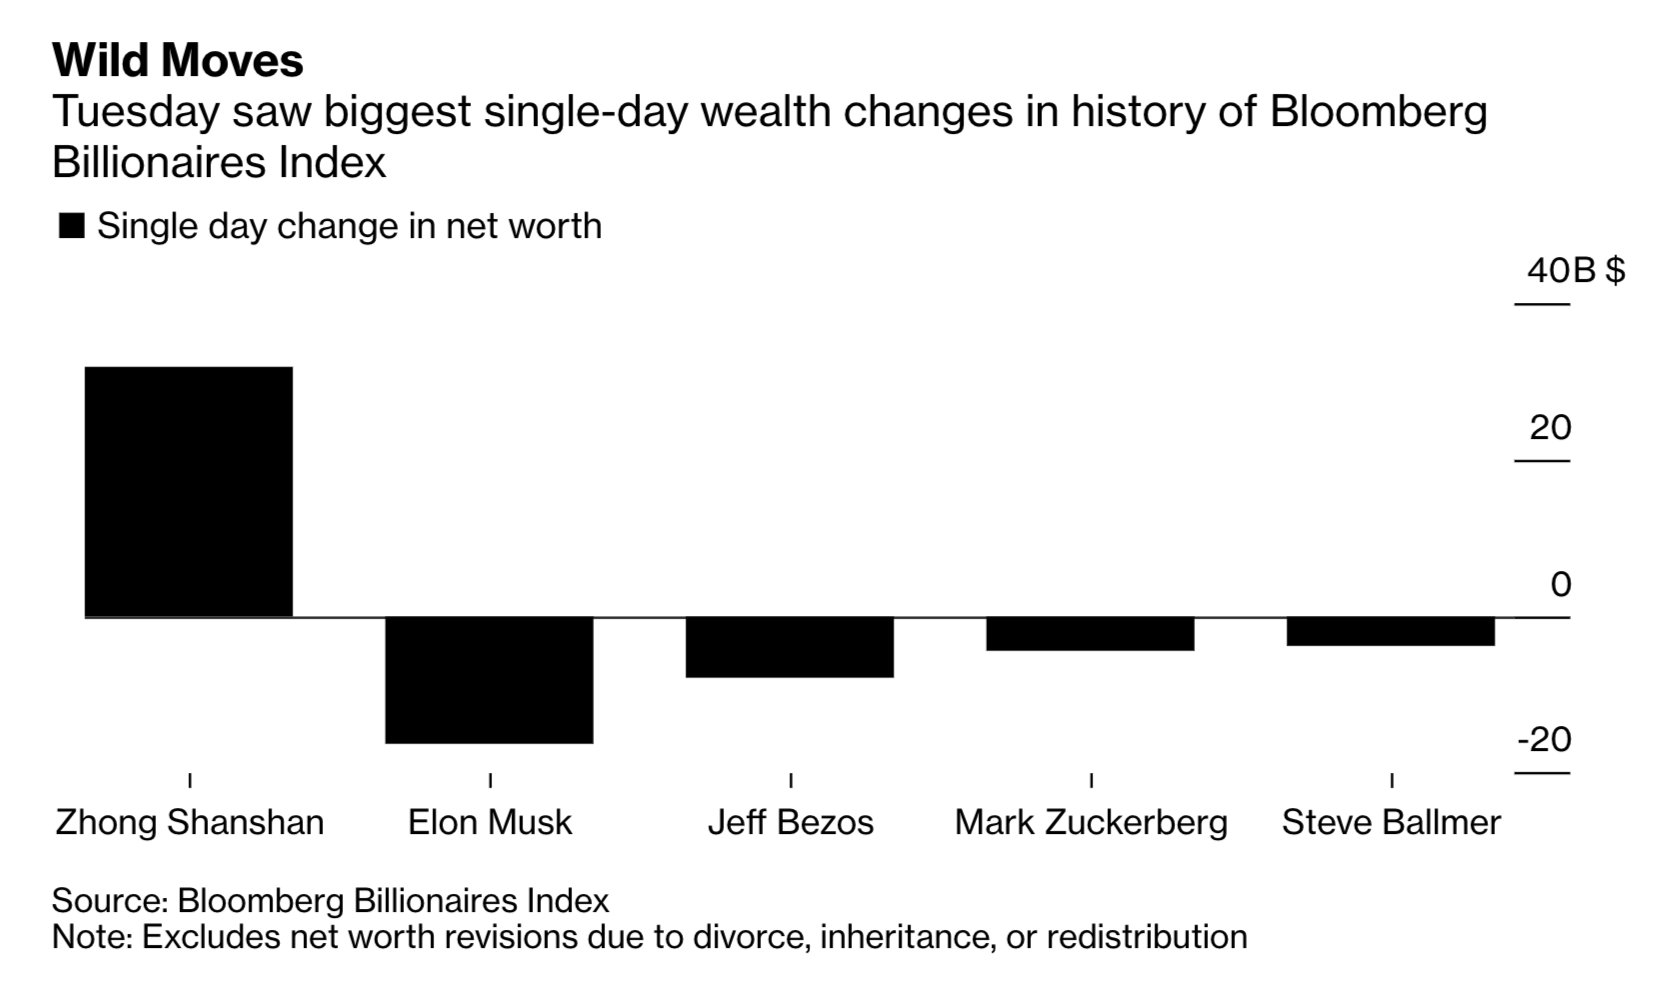 holger zschaepitz on twitter elon musk s net worth plunged 16 3bn tue as tesla stock crashed 21 the largest single day wipeout in history of bbg billionaires index zhong shanshan added 30bn to his twitter